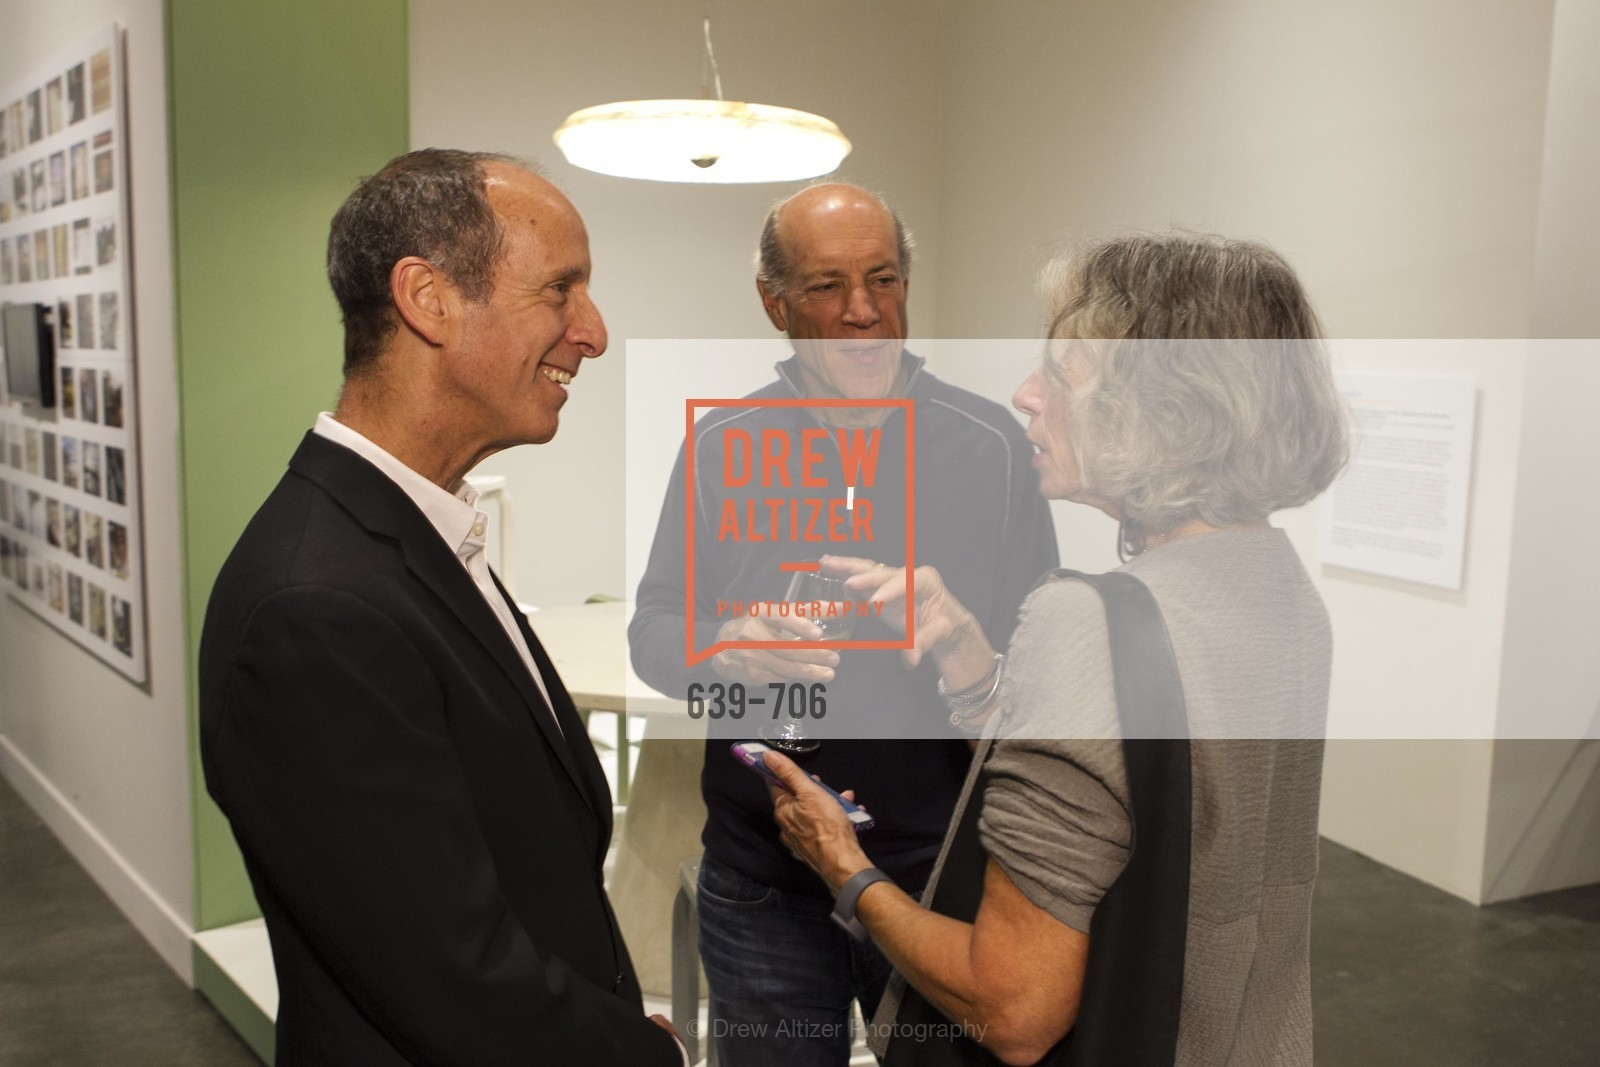 Andy Astor, Exhibit Opening at the MUSEUM OF CRAFT AND DESIGN - Hands Off: New Dutch Design at the Confluence of Technology & Craft, US, May 7th, 2015,Drew Altizer, Drew Altizer Photography, full-service agency, private events, San Francisco photographer, photographer california